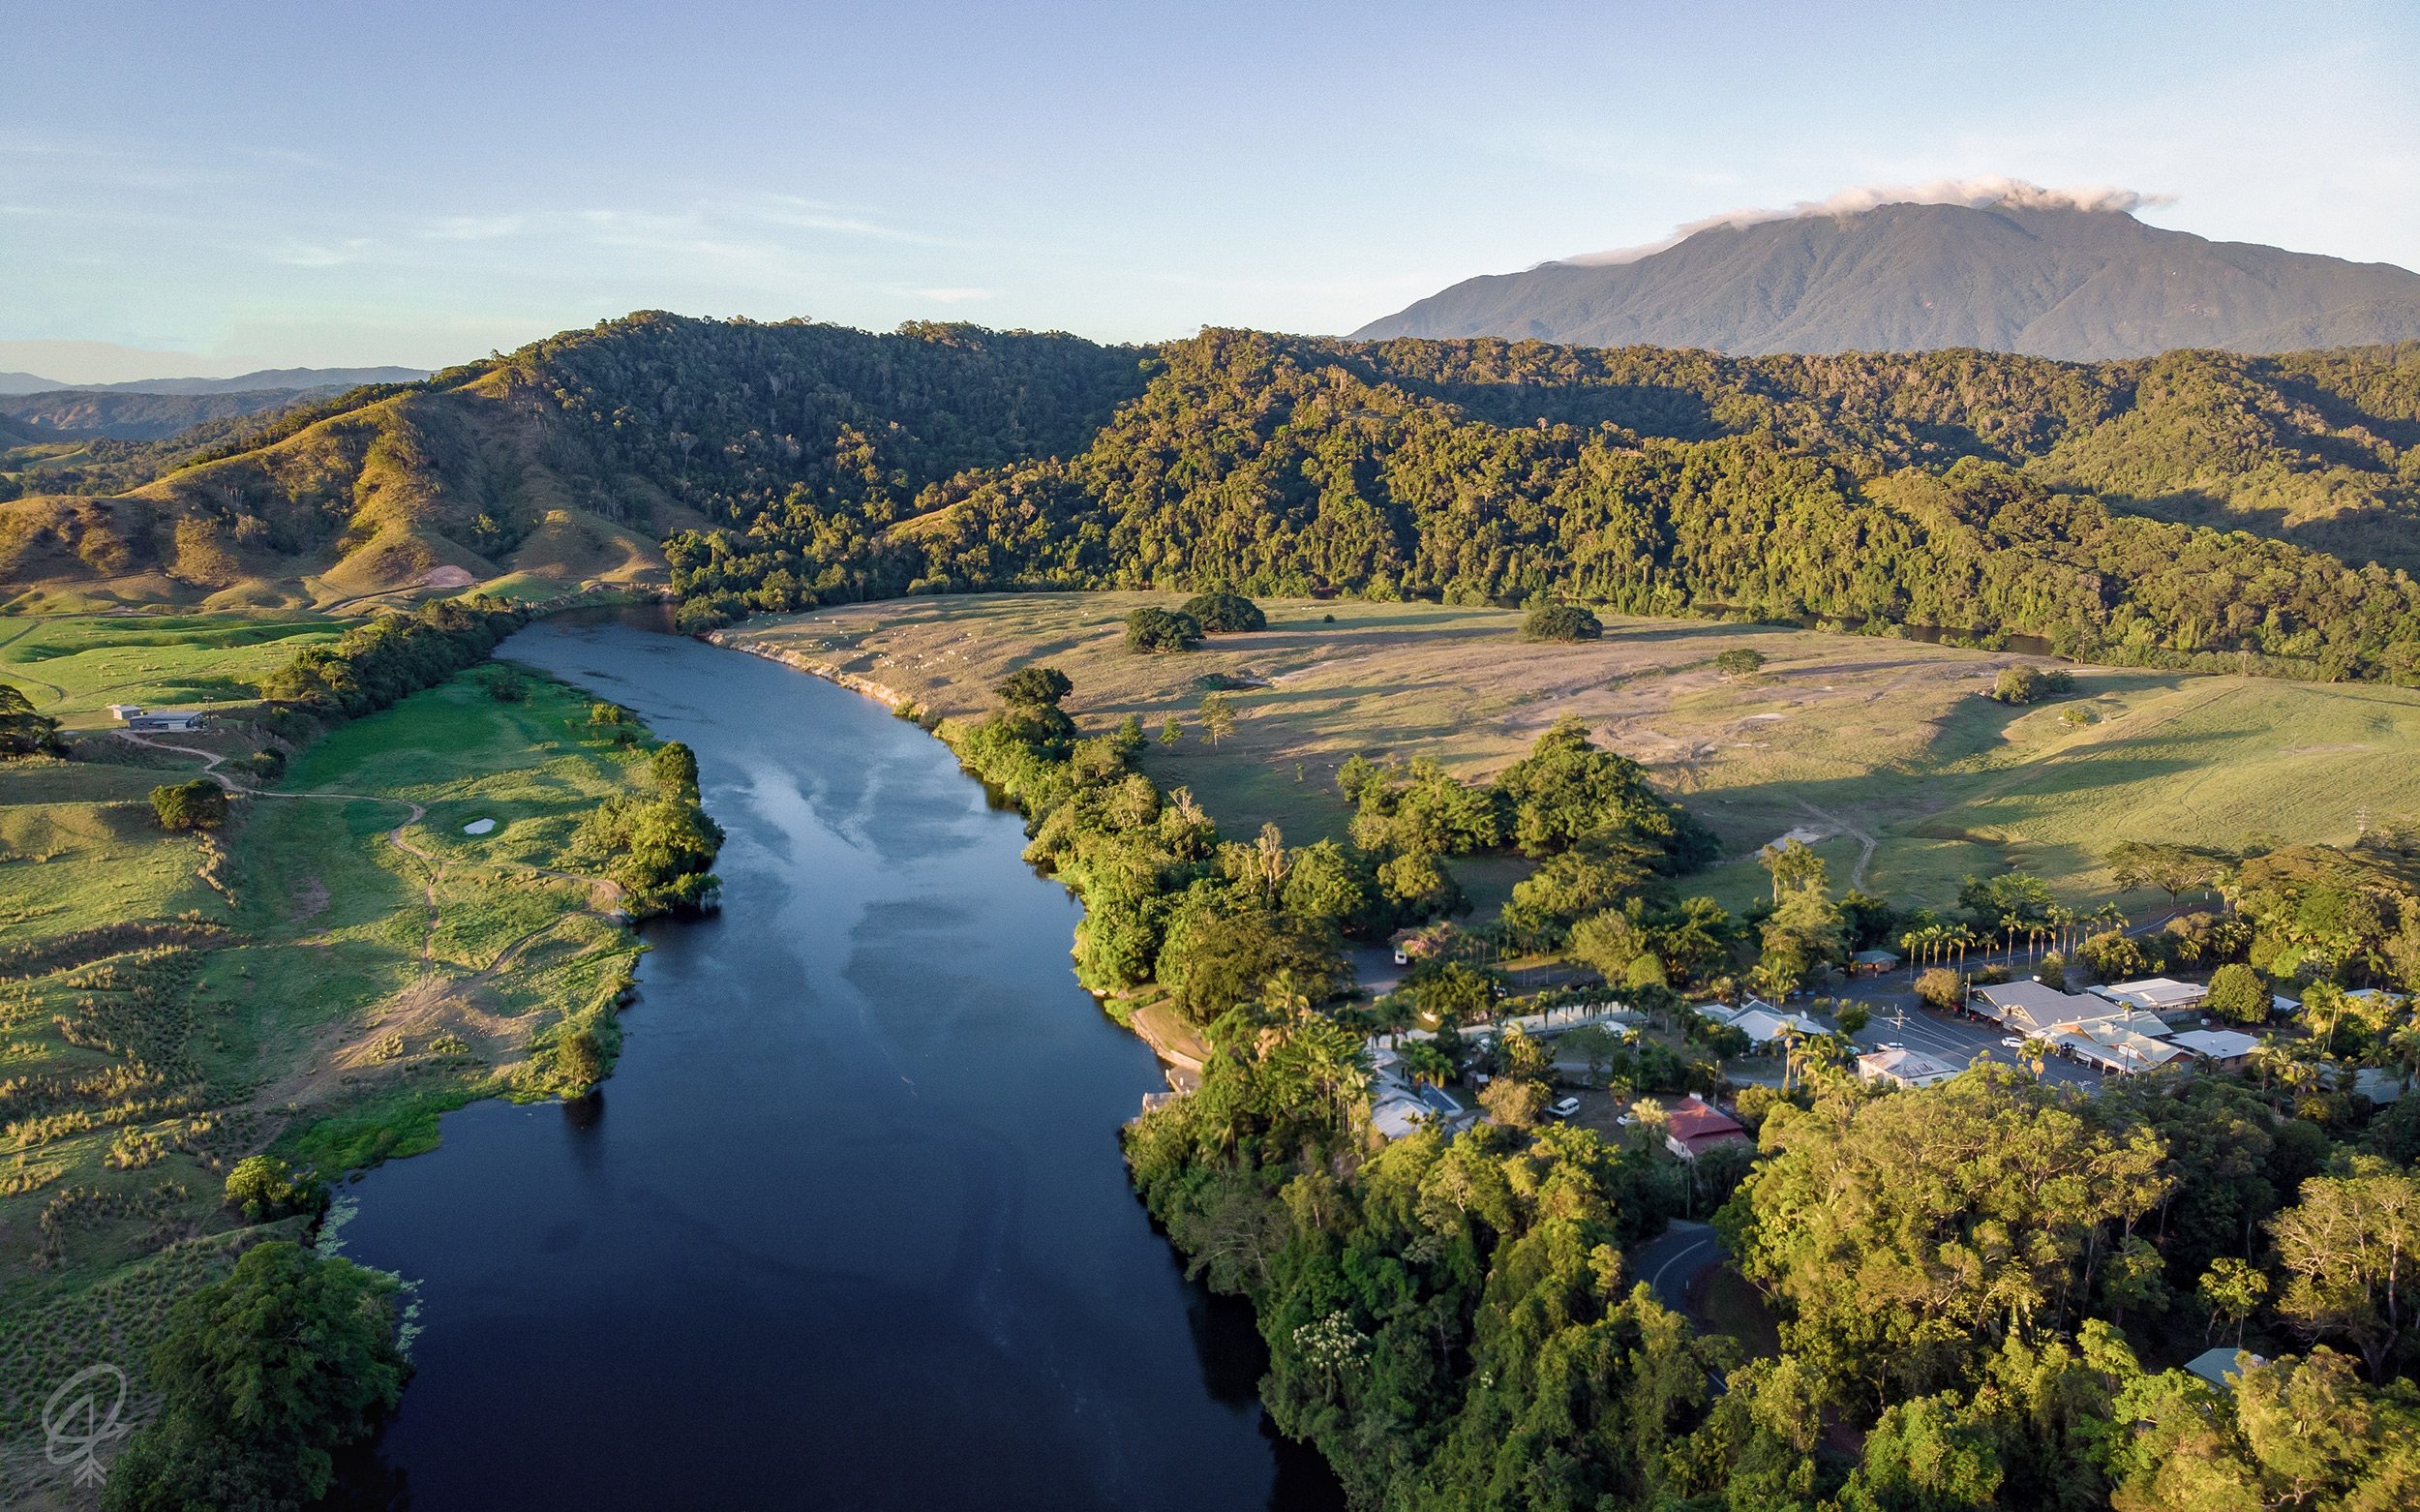 drone shot of the river daintree